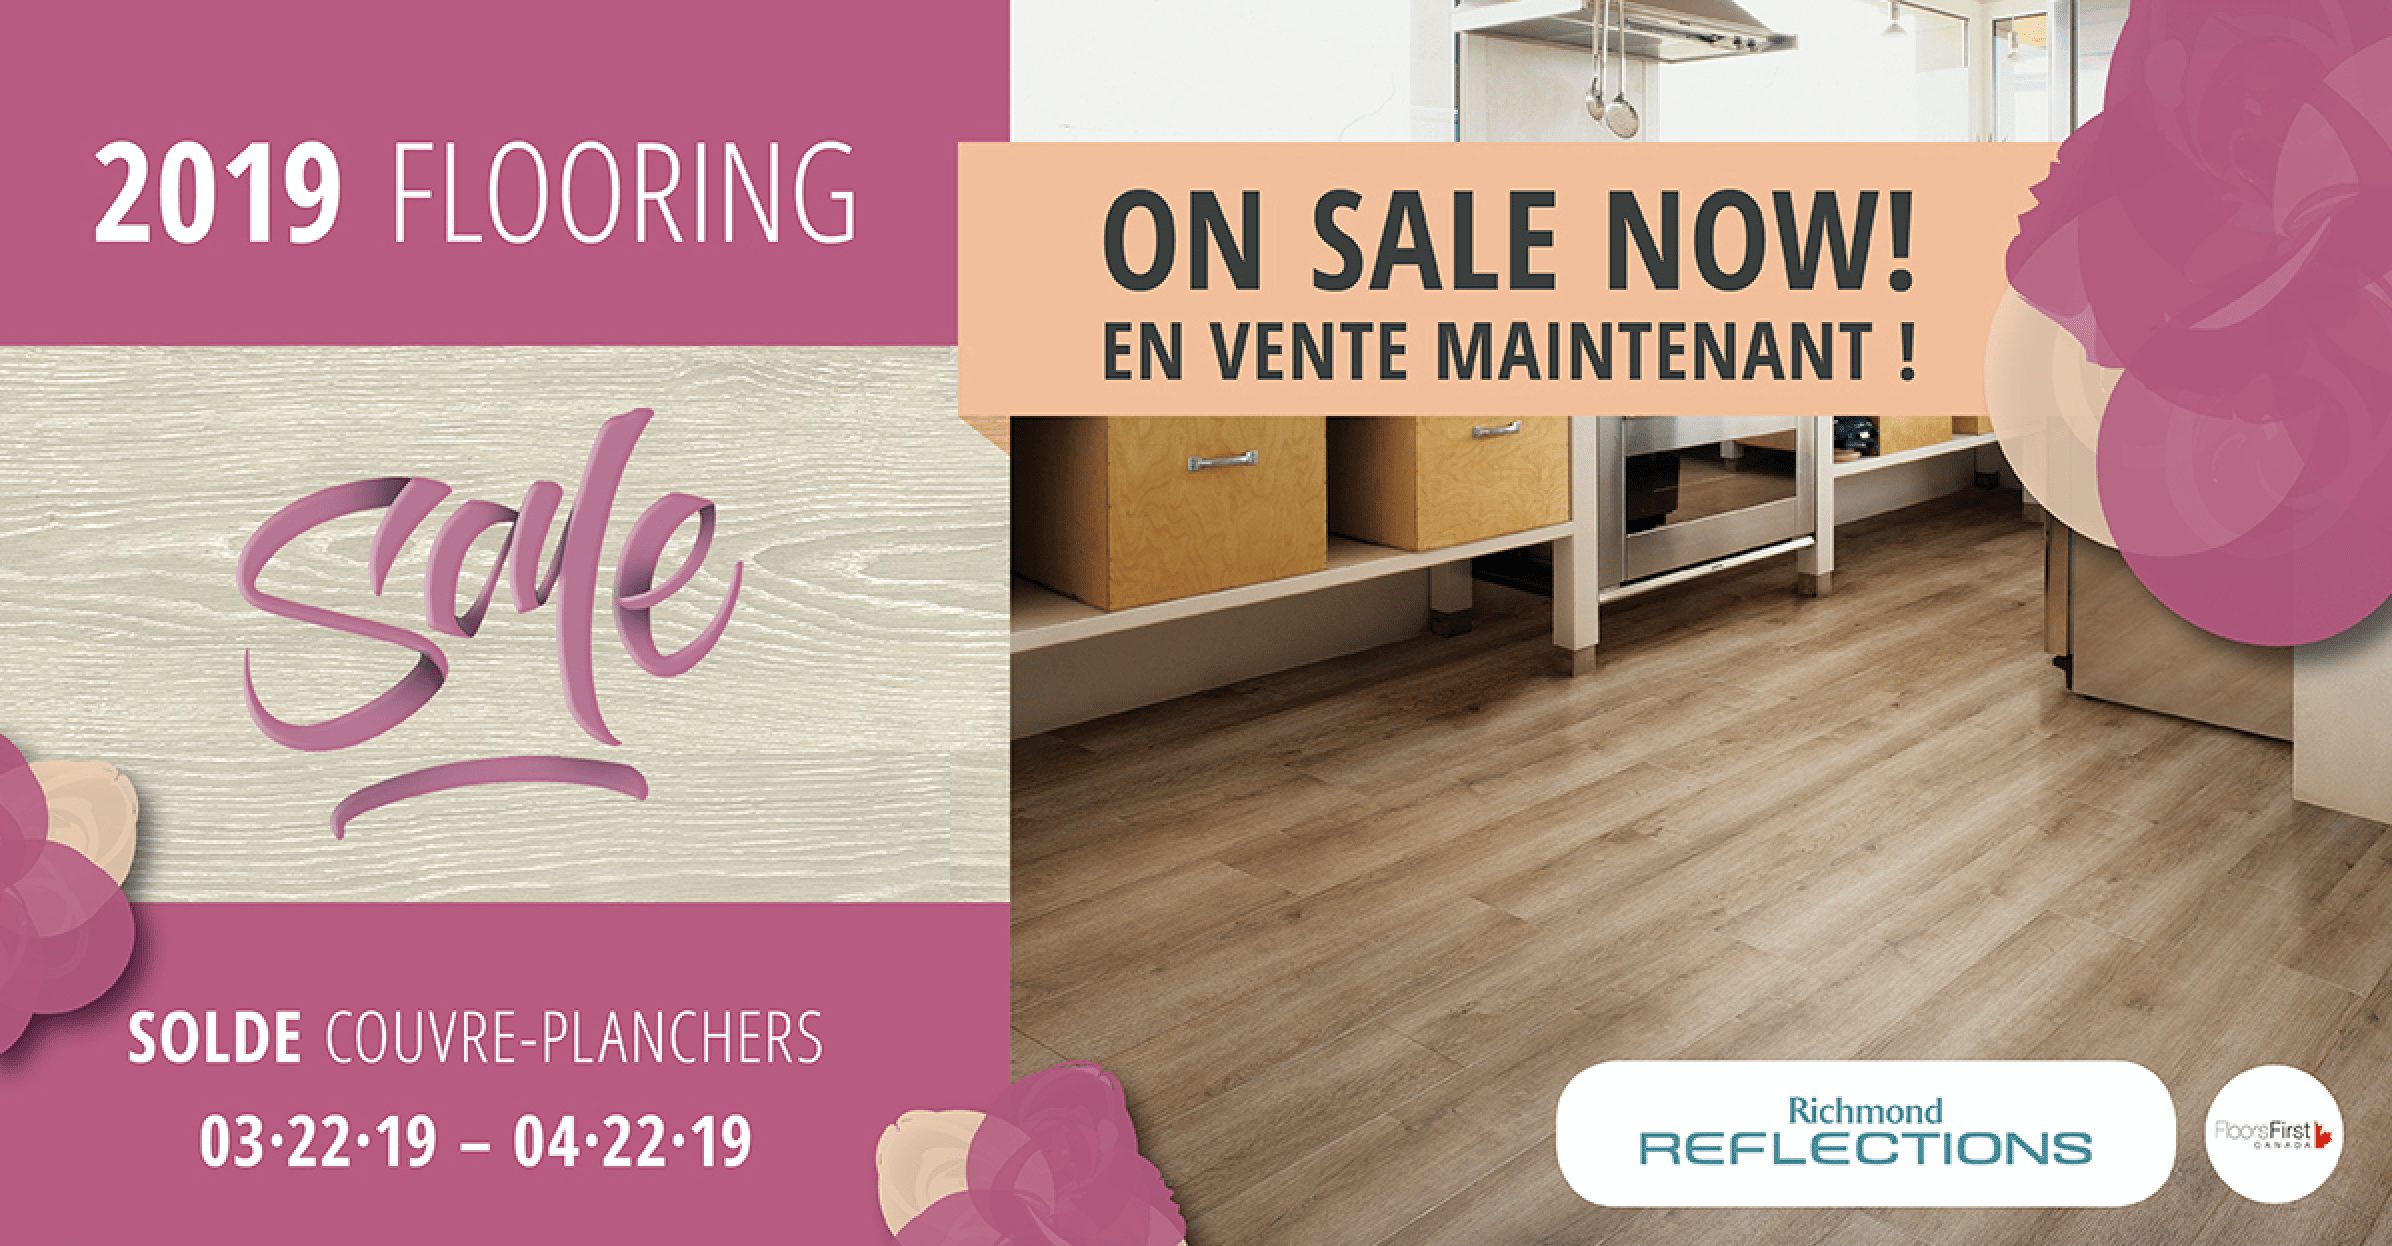 The 2019 Flooring Sale is on Now at Contempa! Laurentian